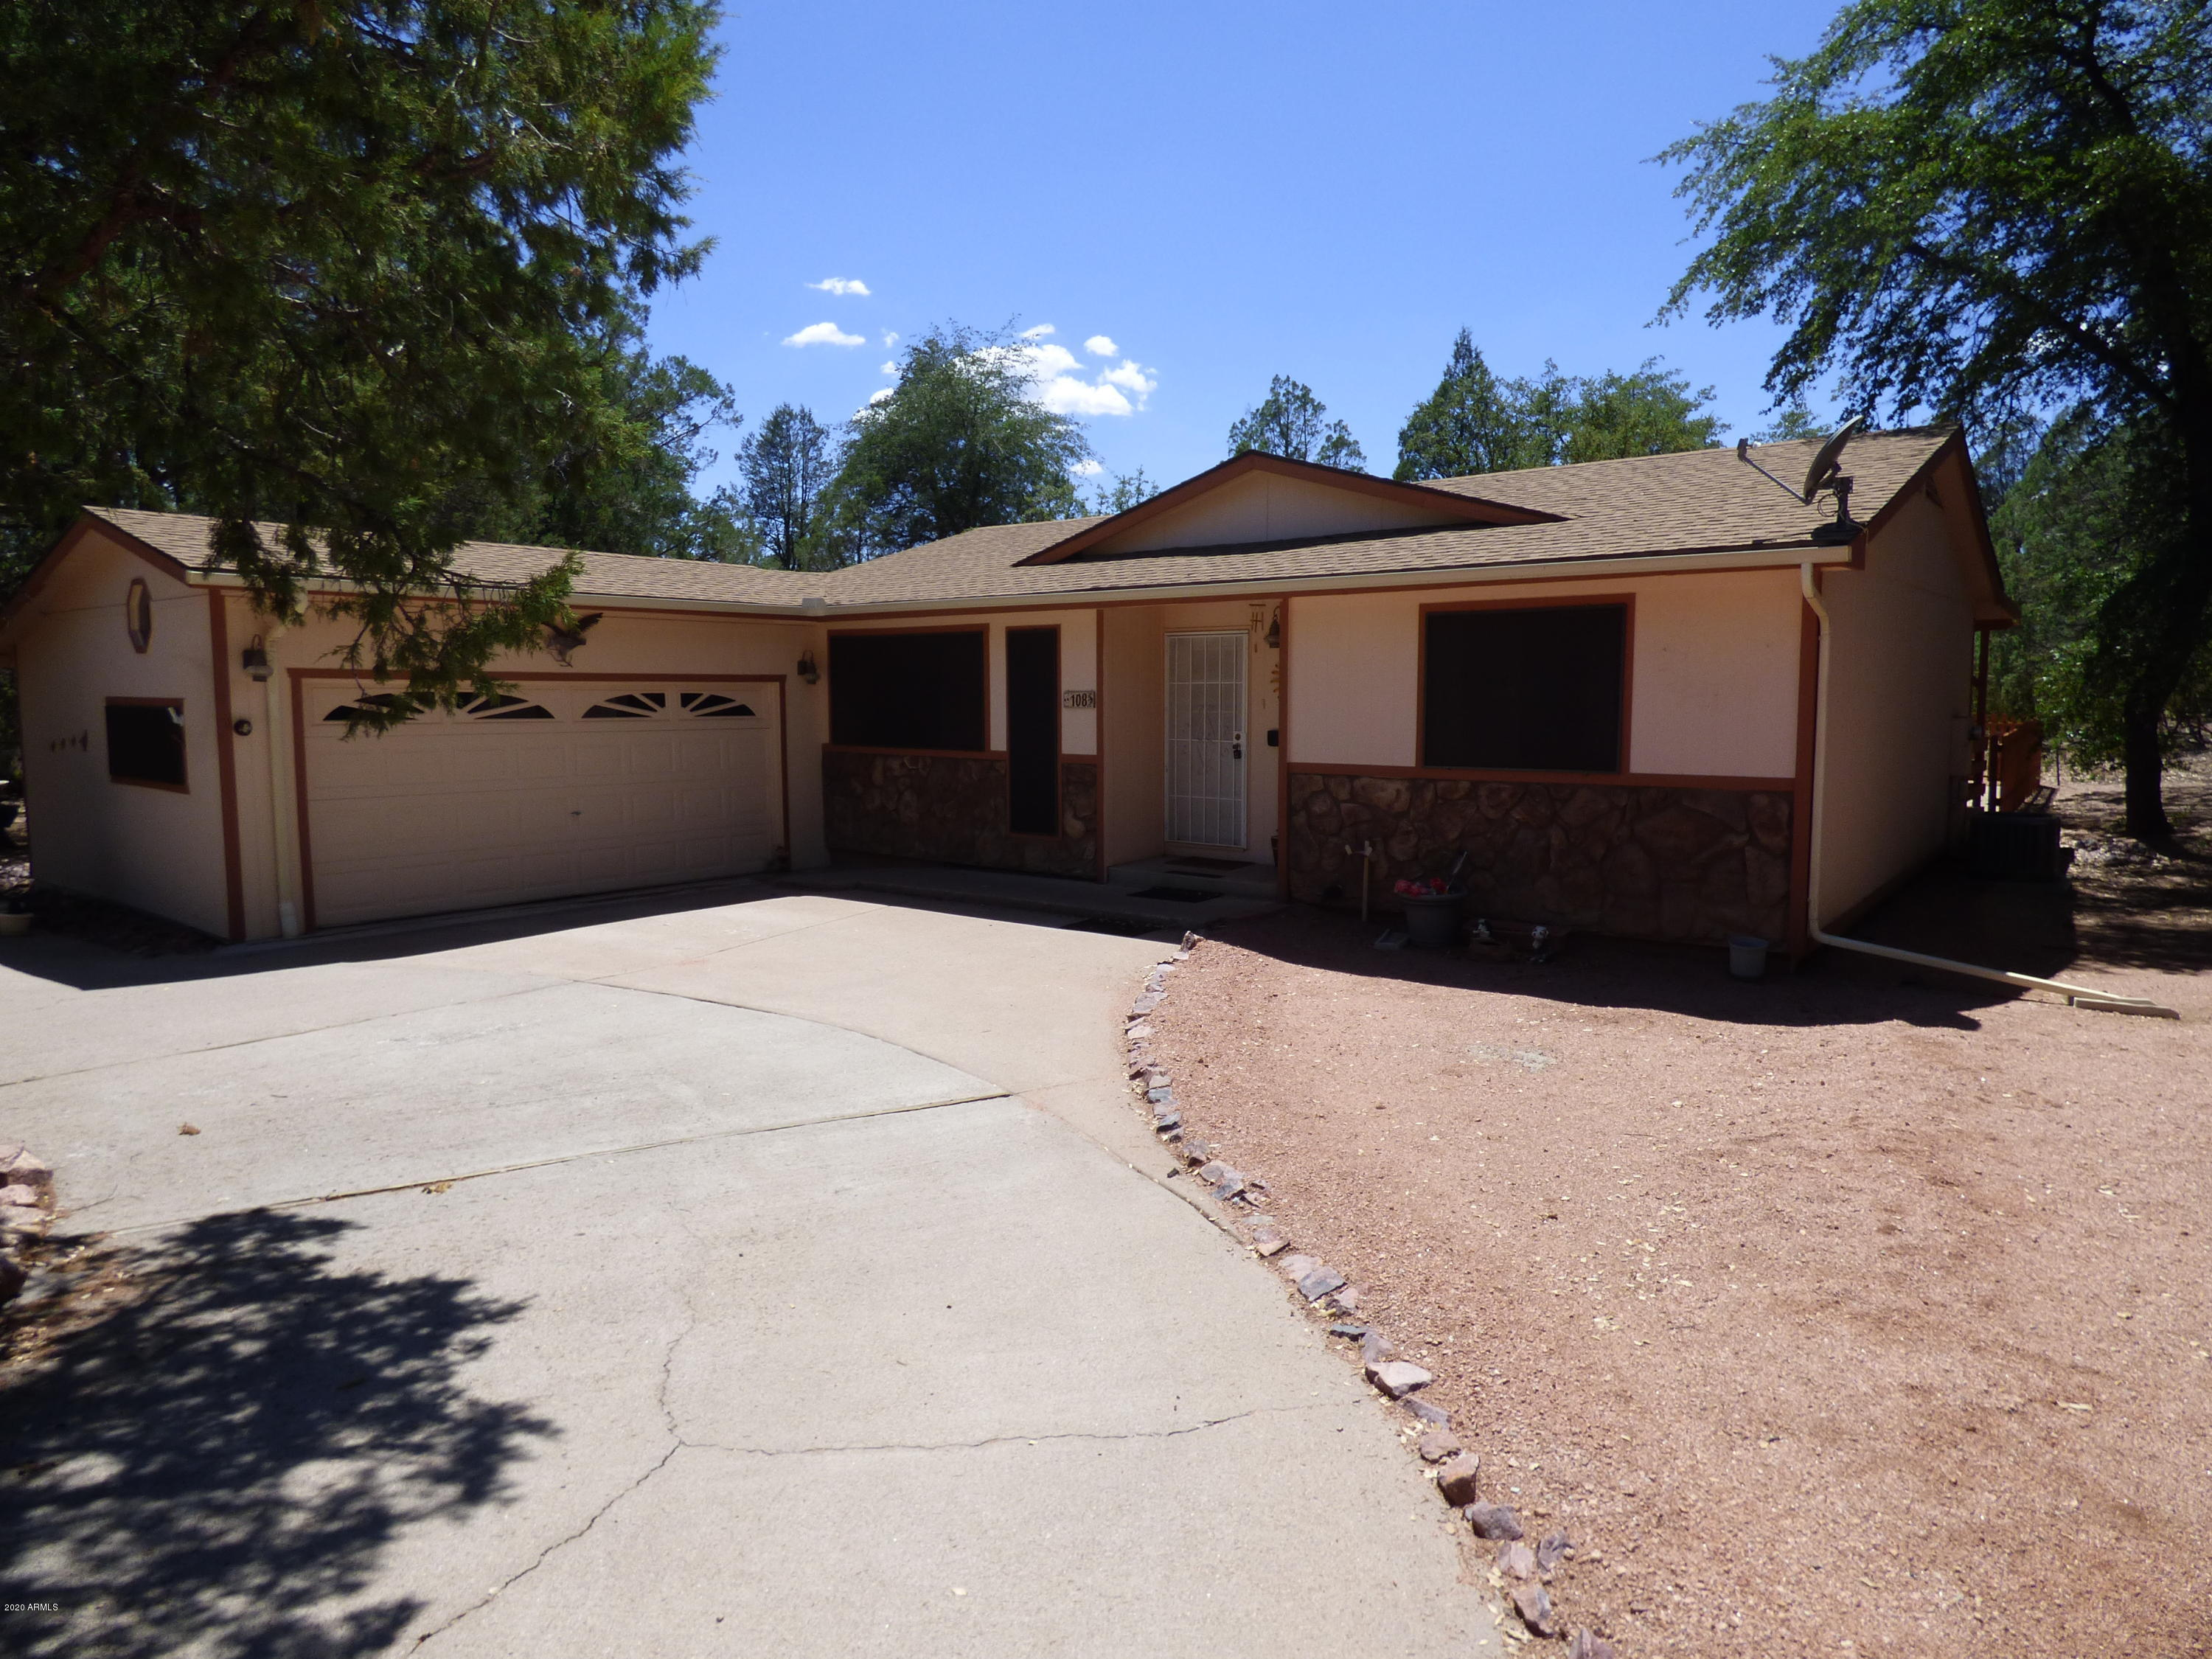 Photo of 108 N FOOTHILL Drive, Payson, AZ 85541